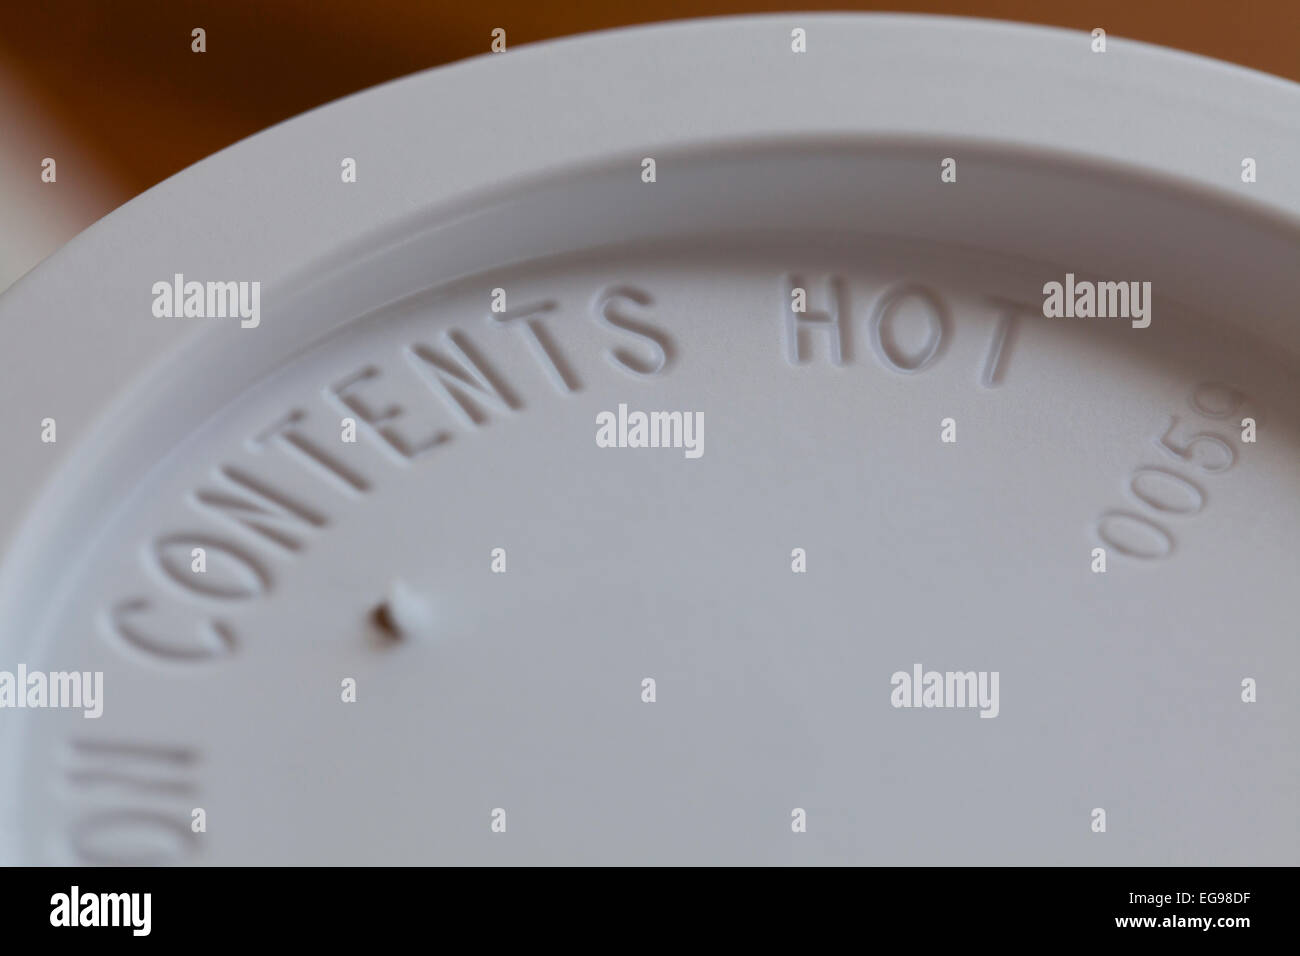 Contents Hot warning message on coffee cup lid - USA - Stock Image